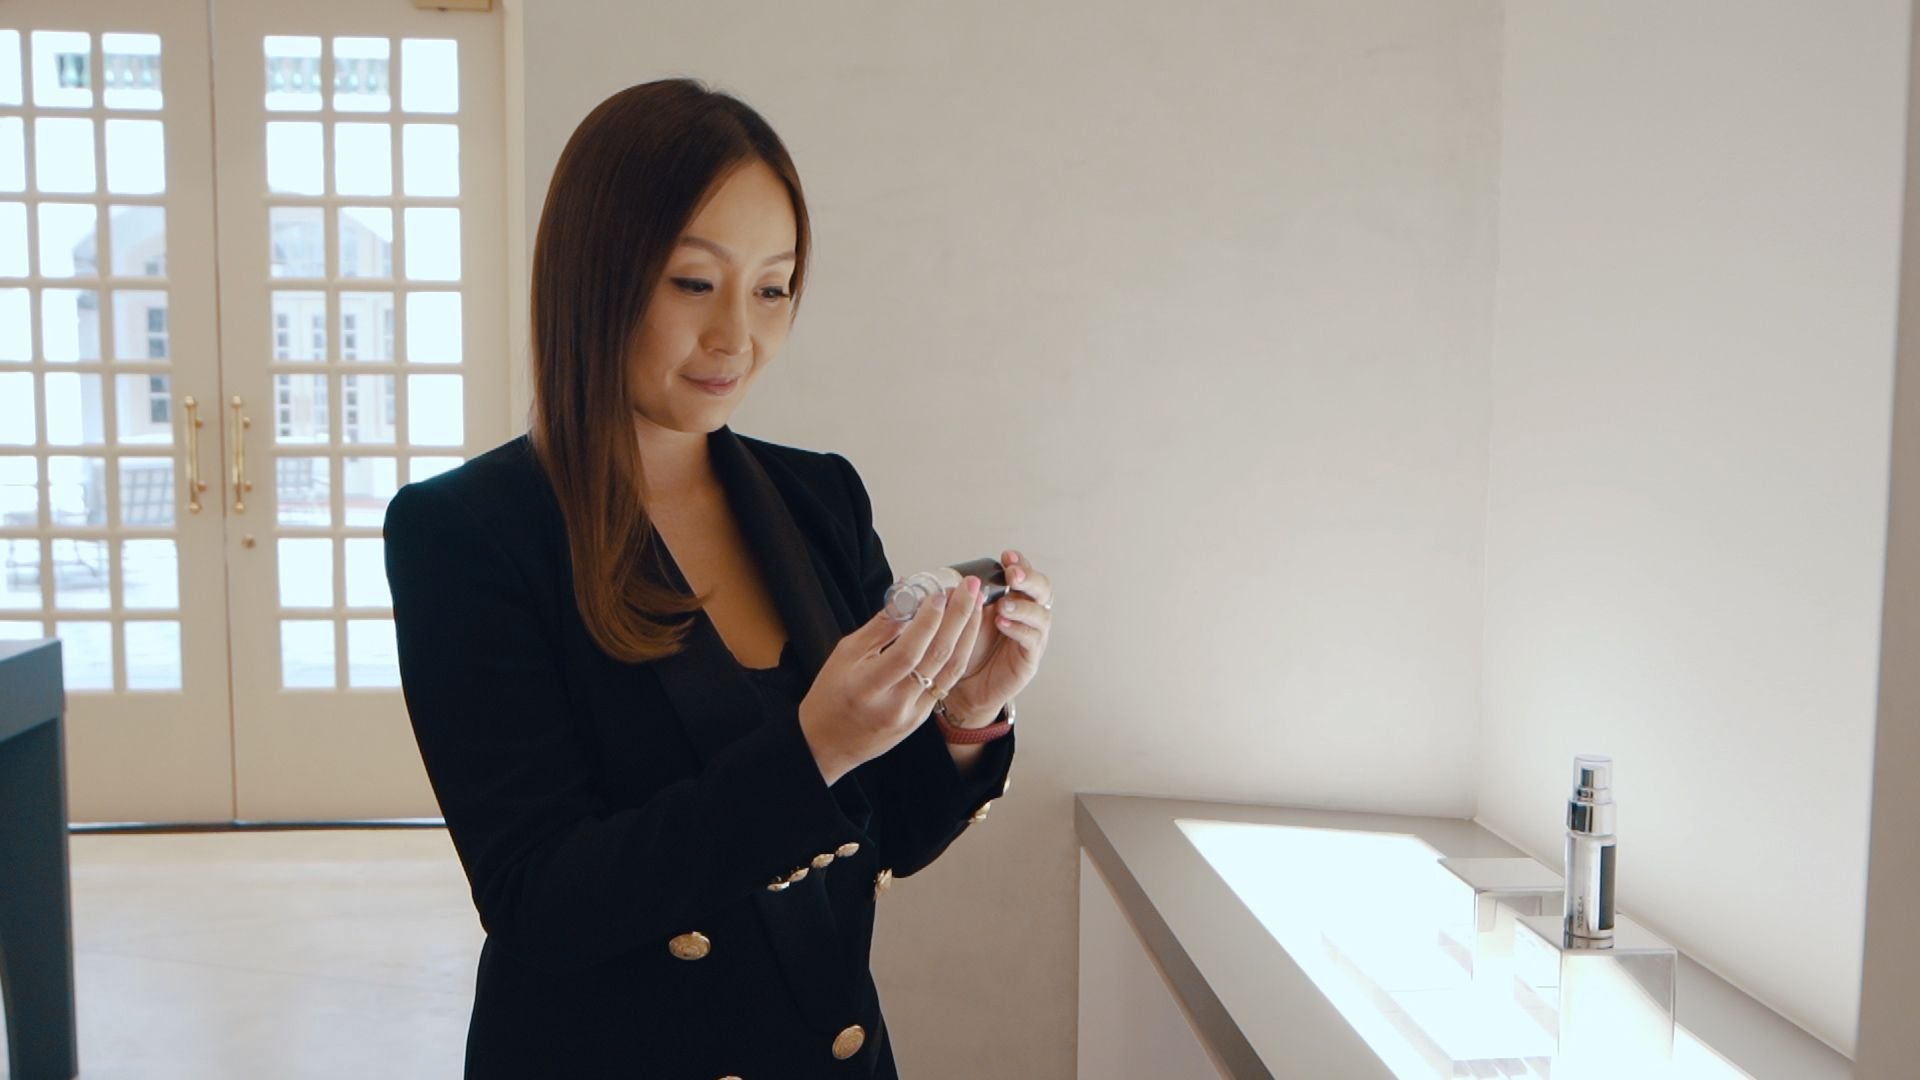 Serene Chua Tries Out Noesa, One Of The Most Expensive Skincare Brands In The World